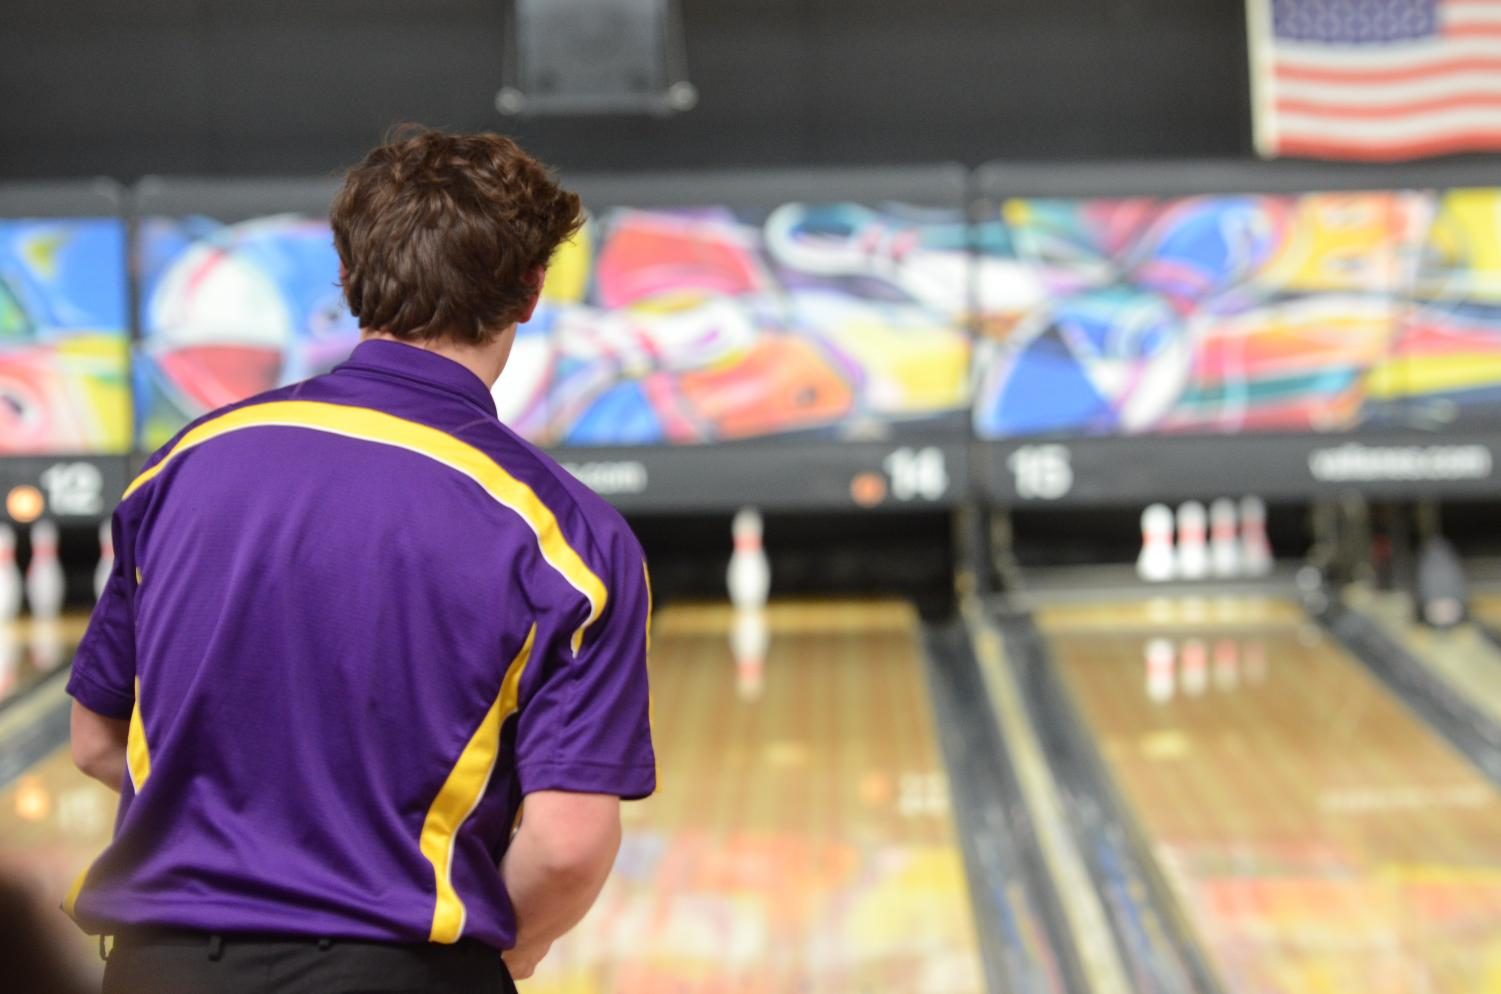 Aidan Cooley, '18 tosses down the ball for the 2nd throw. He was able to hit the final pin down, getting a spare.